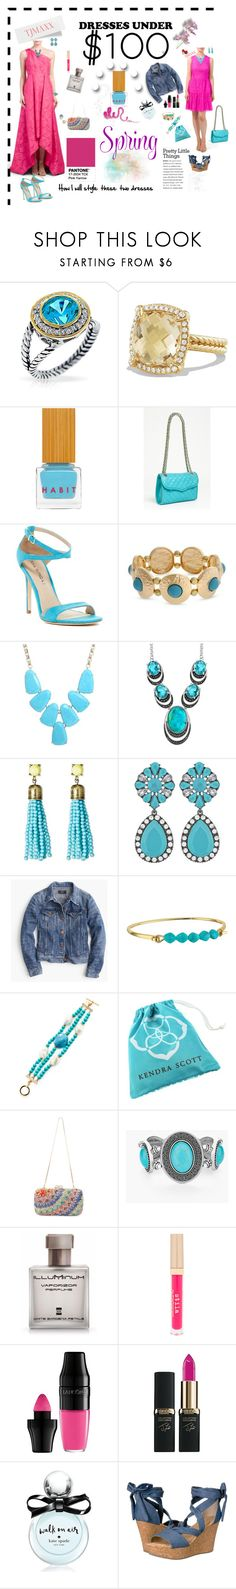 """Styling my tjmaxx finds"" by deborah-518 ❤ liked on Polyvore featuring Bling Jewelry, David Yurman, Habit Cosmetics, Rebecca Minkoff, Via Spiga, Kendra Scott, Le Vieux, SUGARFIX by BaubleBar, J.Crew and Lauren Ralph Lauren"